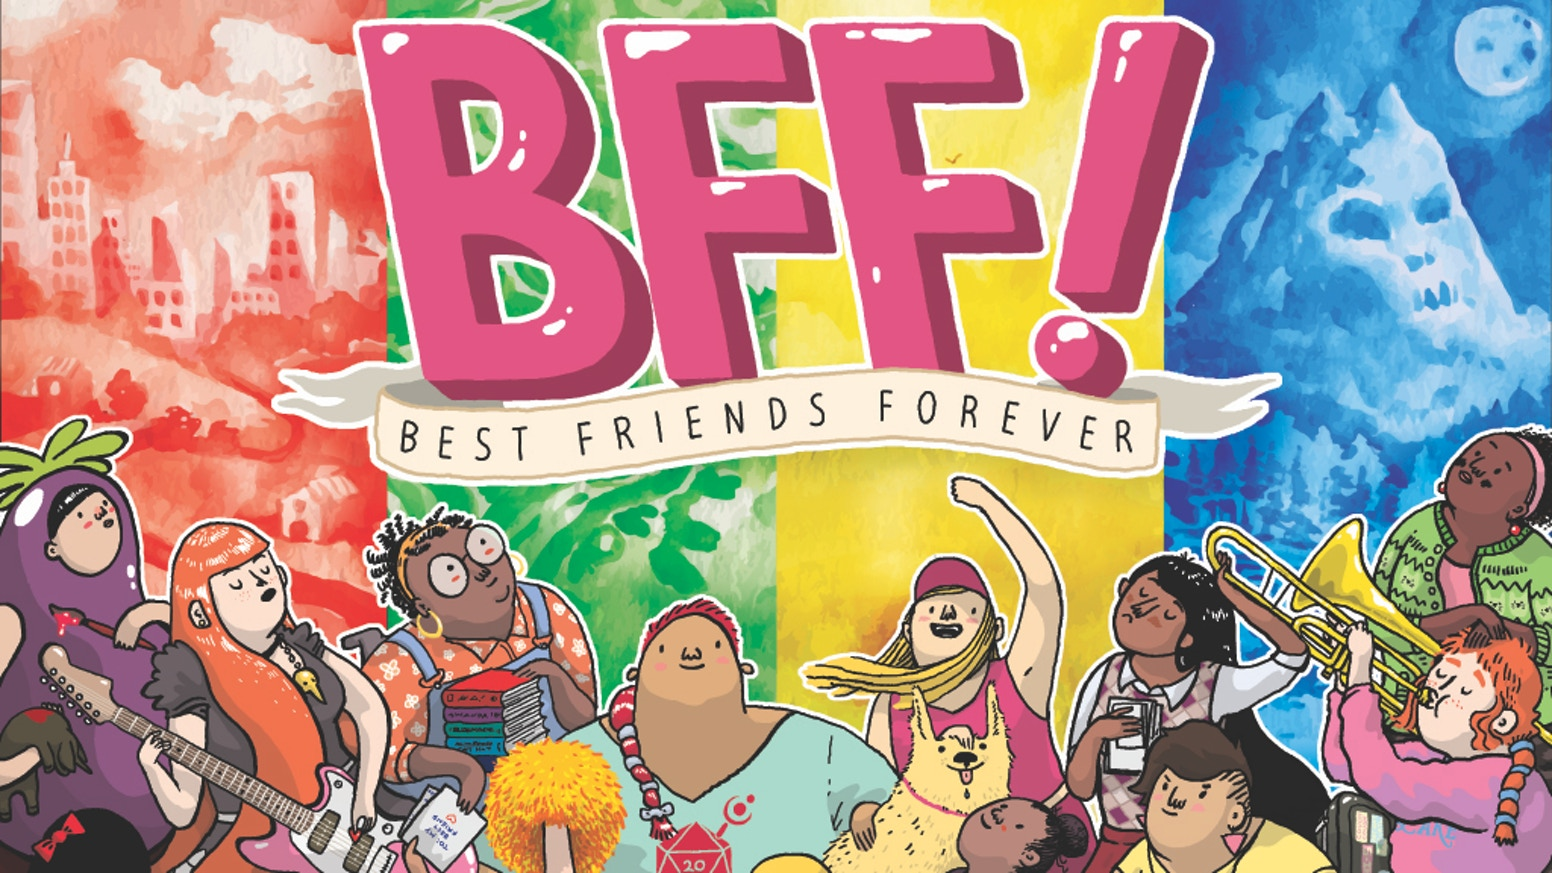 bff the rpg of girlhood friendship and adventure by ross